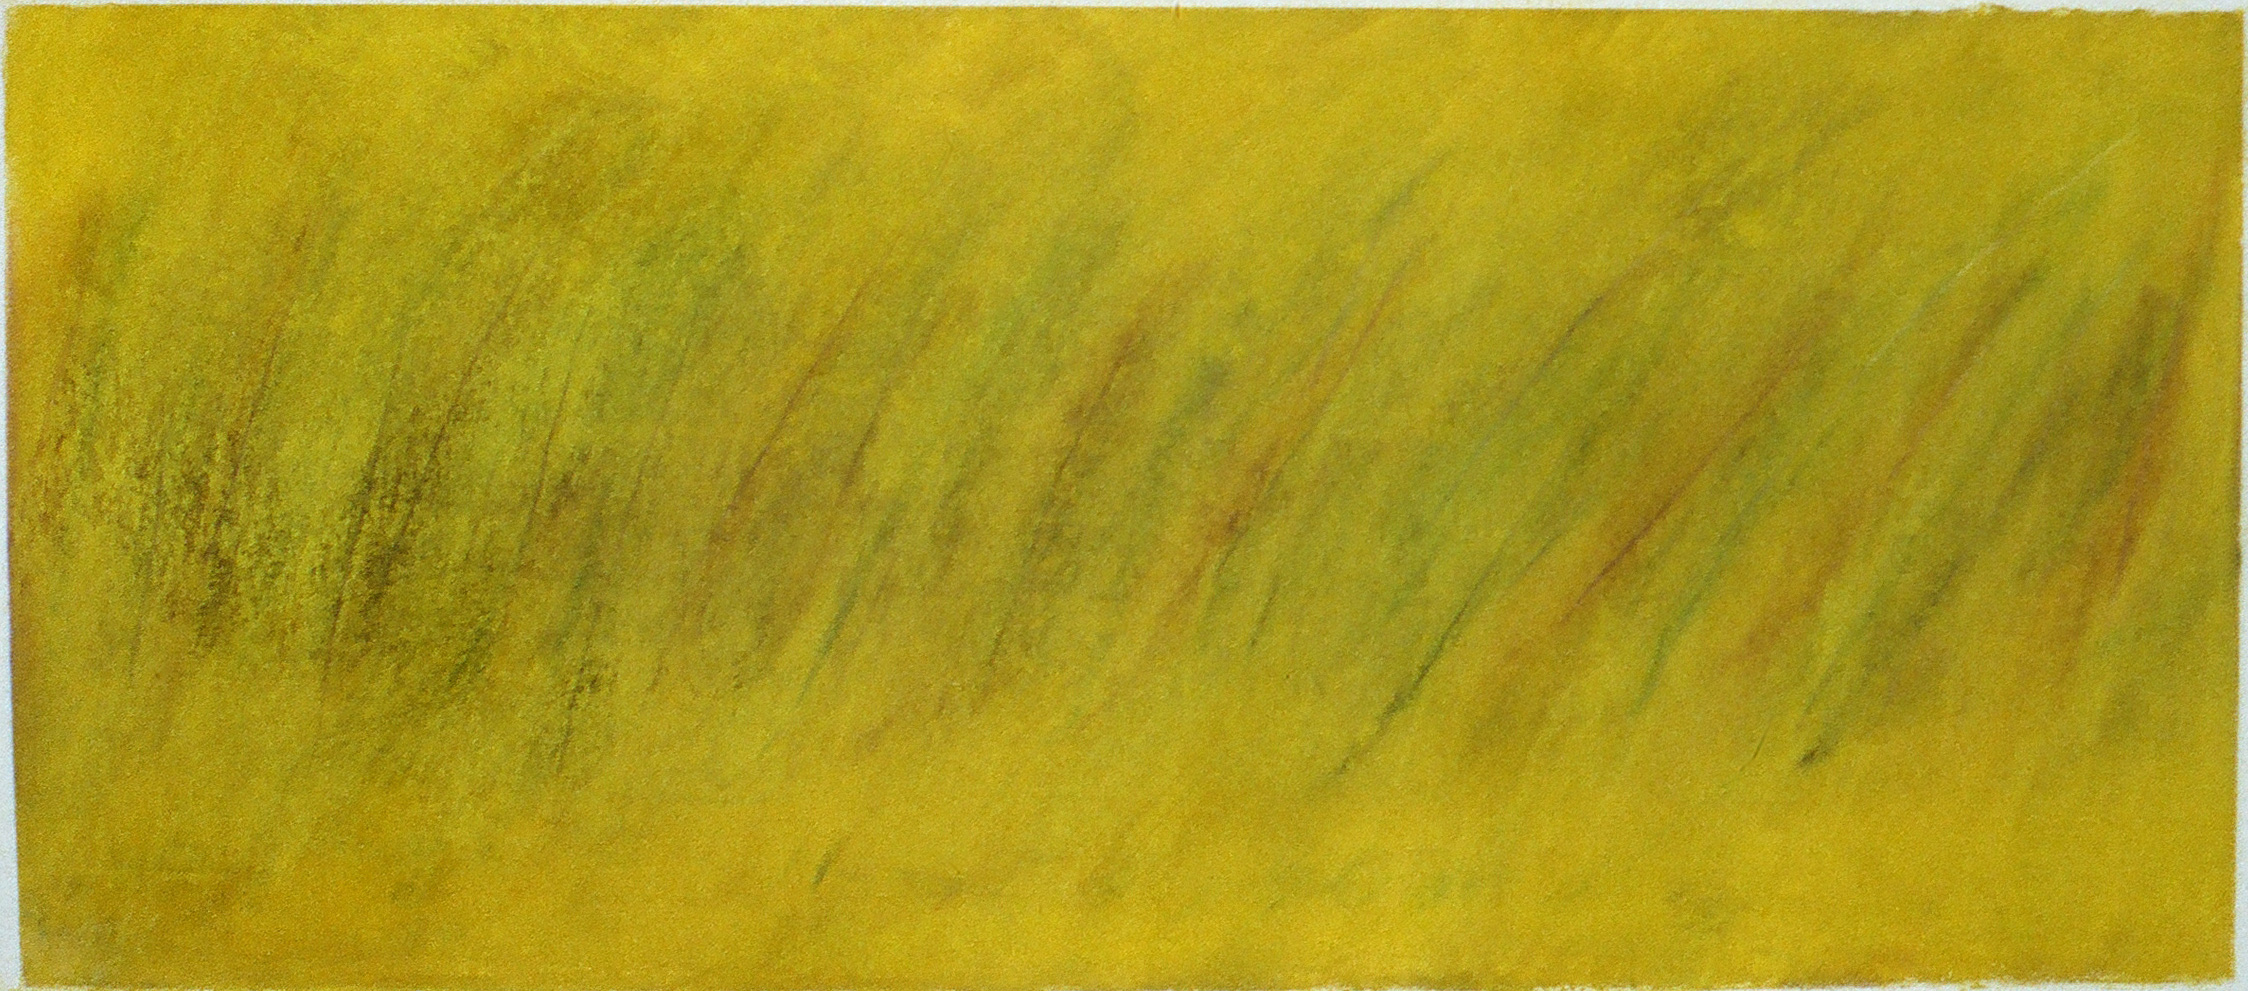 "Yellow Field  10"" x 22.5"" Pastel on paper 2000"